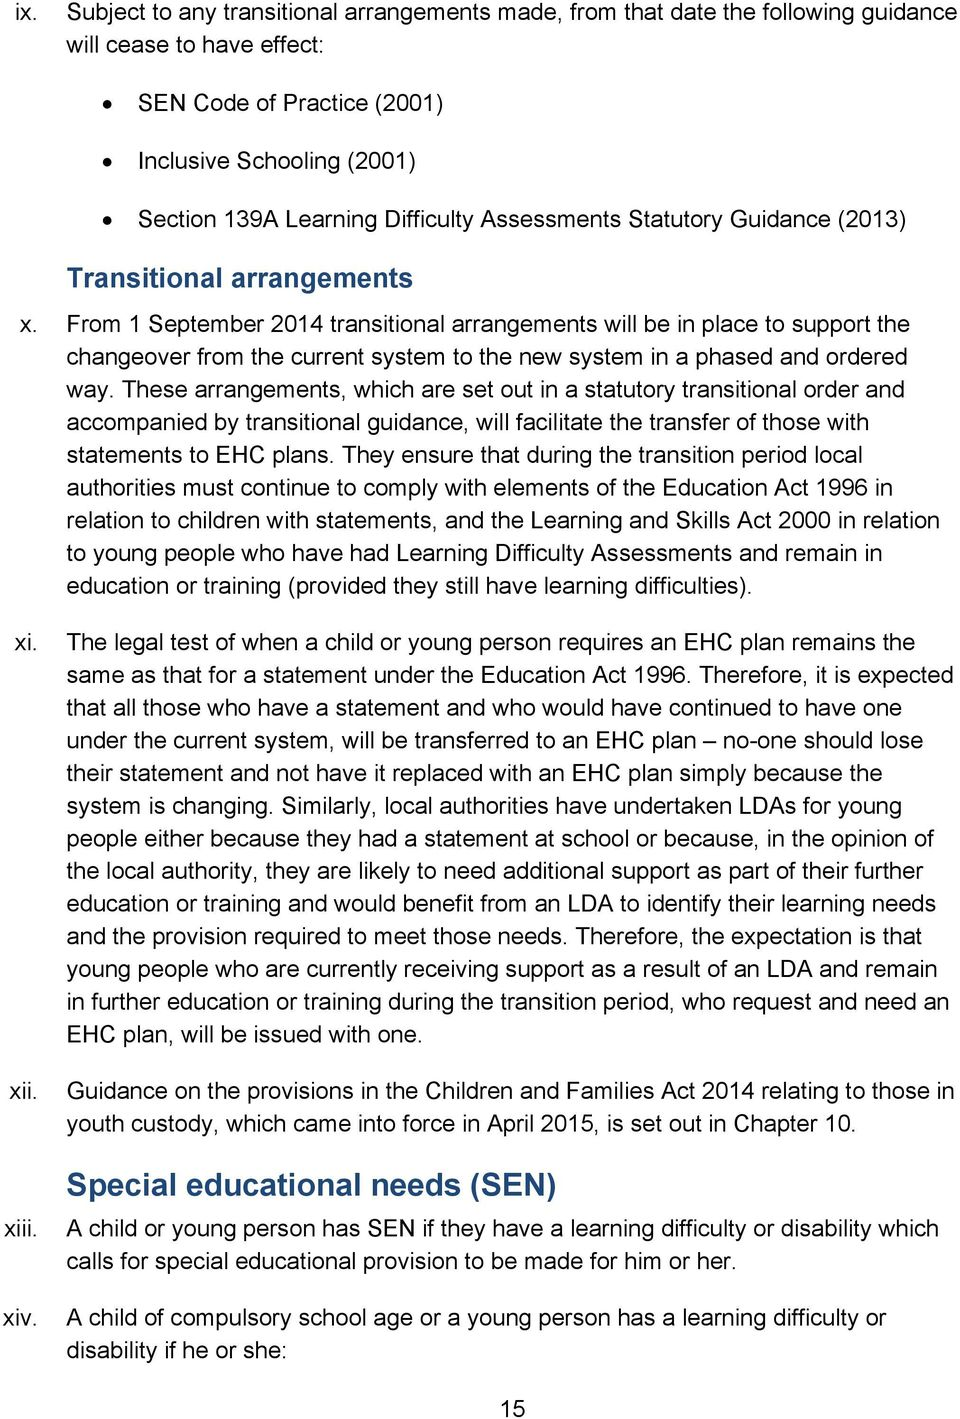 From 1 September 2014 transitional arrangements will be in place to support the changeover from the current system to the new system in a phased and ordered way.